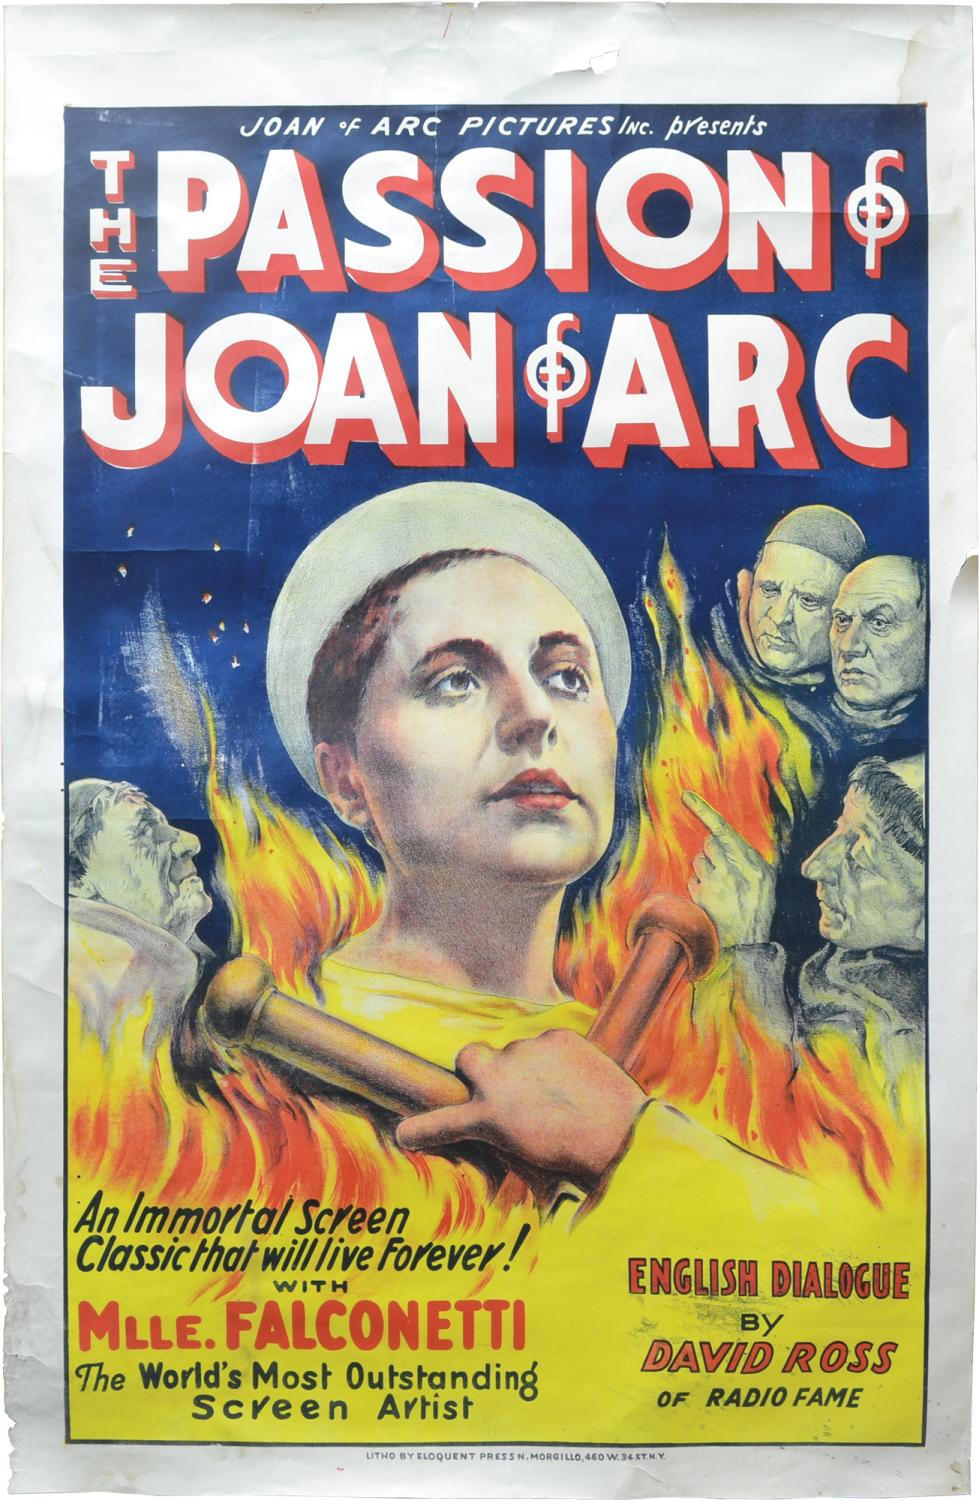 The Passion of Joan of Arc (Original US poster for the 1933 sound reissue of the 1928 film): Dreyer...